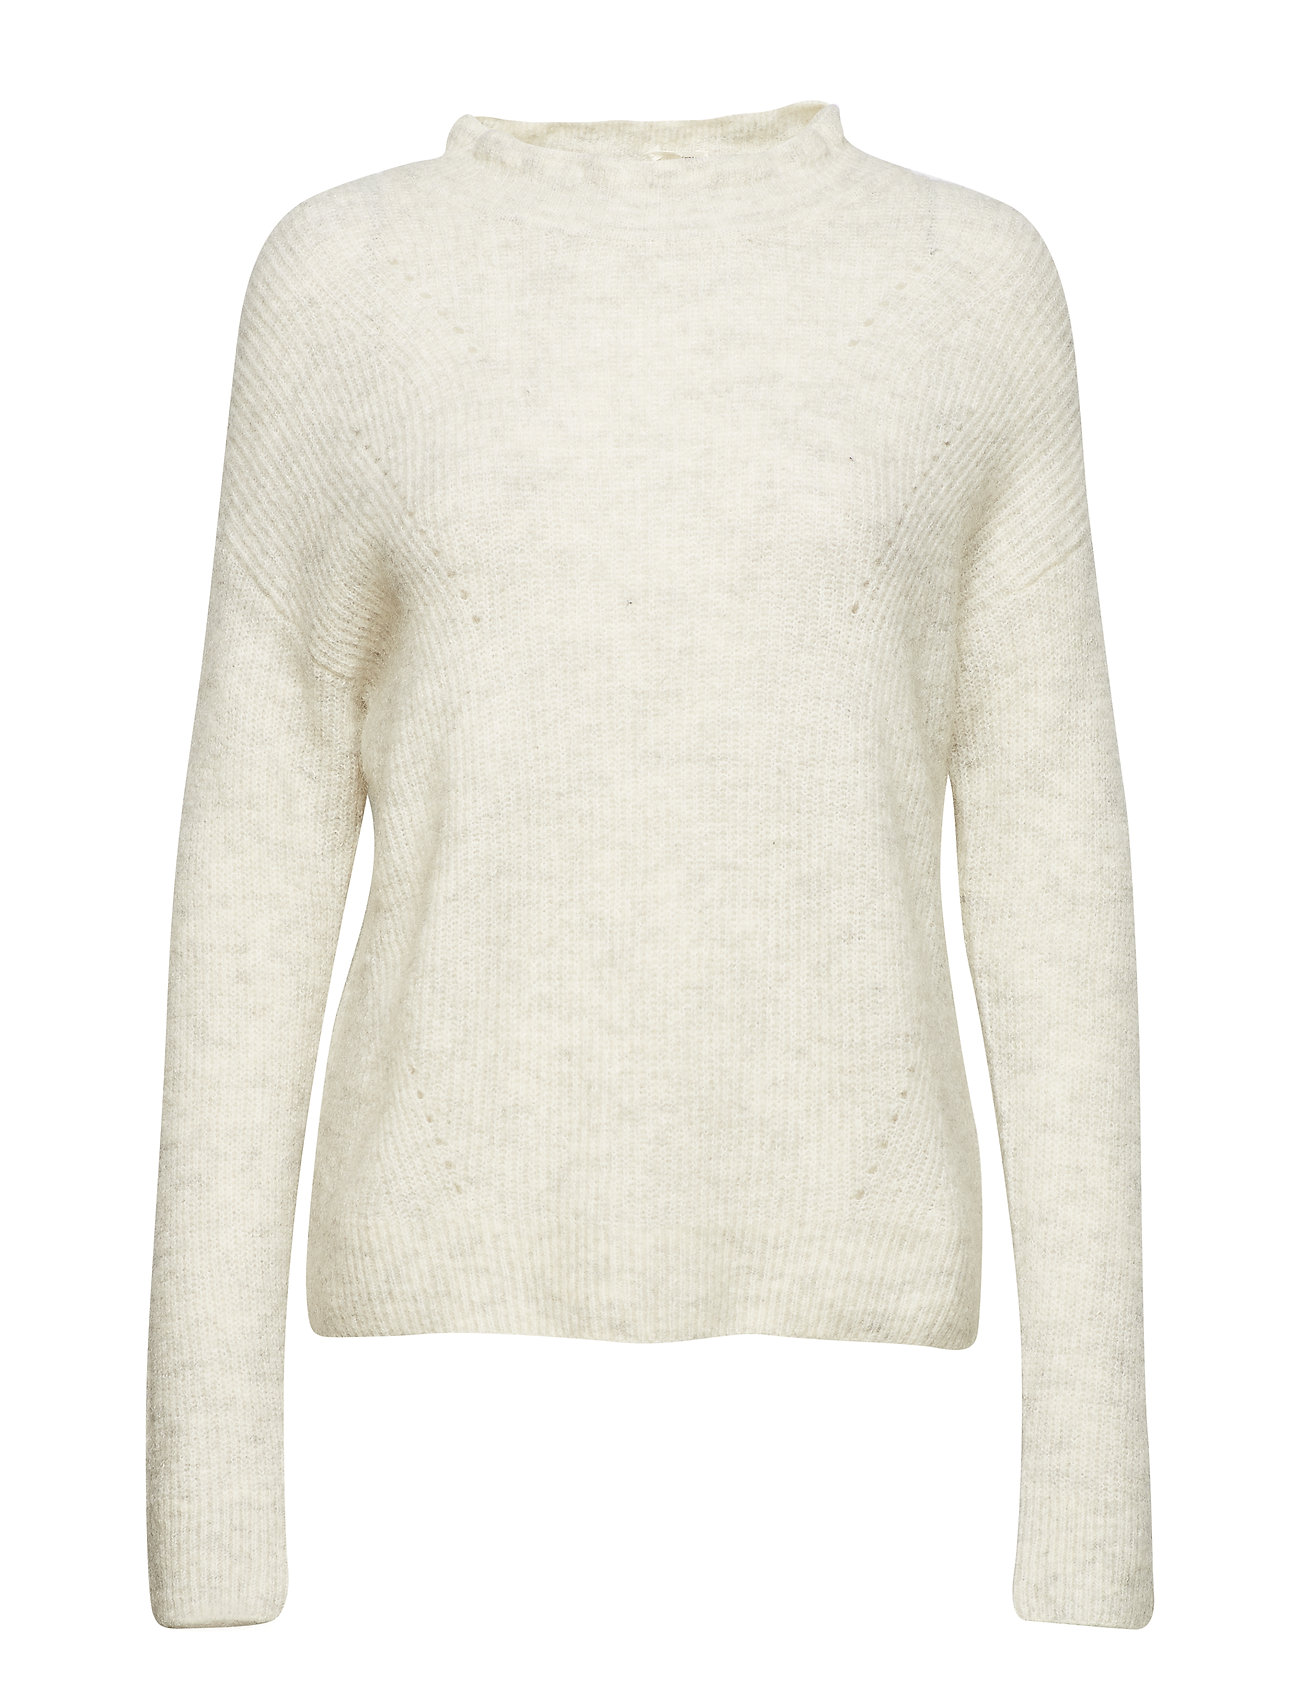 Image of Finula Pullover Knit (3061013865)